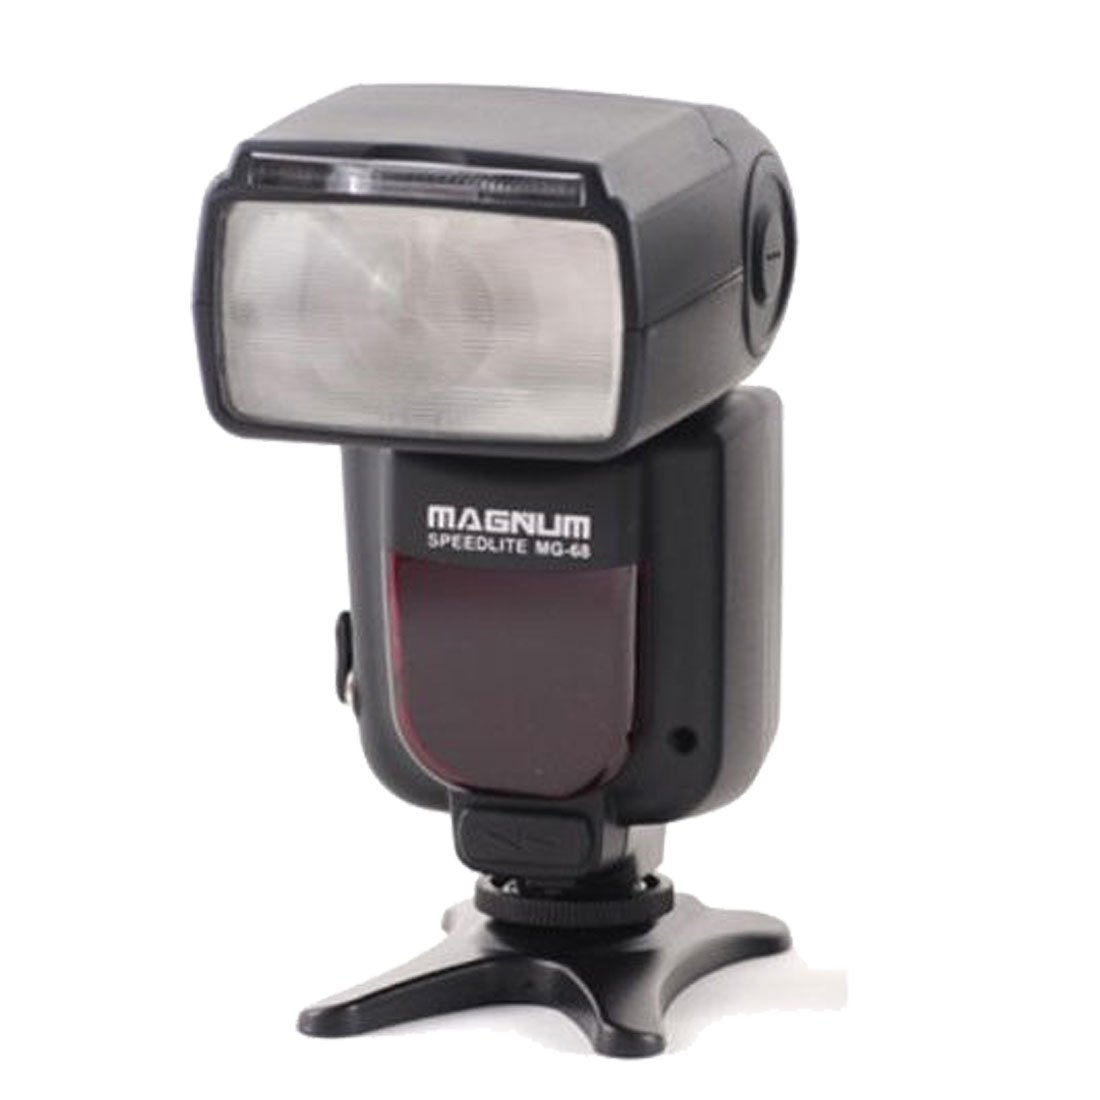 Aputure Magnum Mg-68 Speedlite Flash for Canon Nikon Pentax Dslr Camera